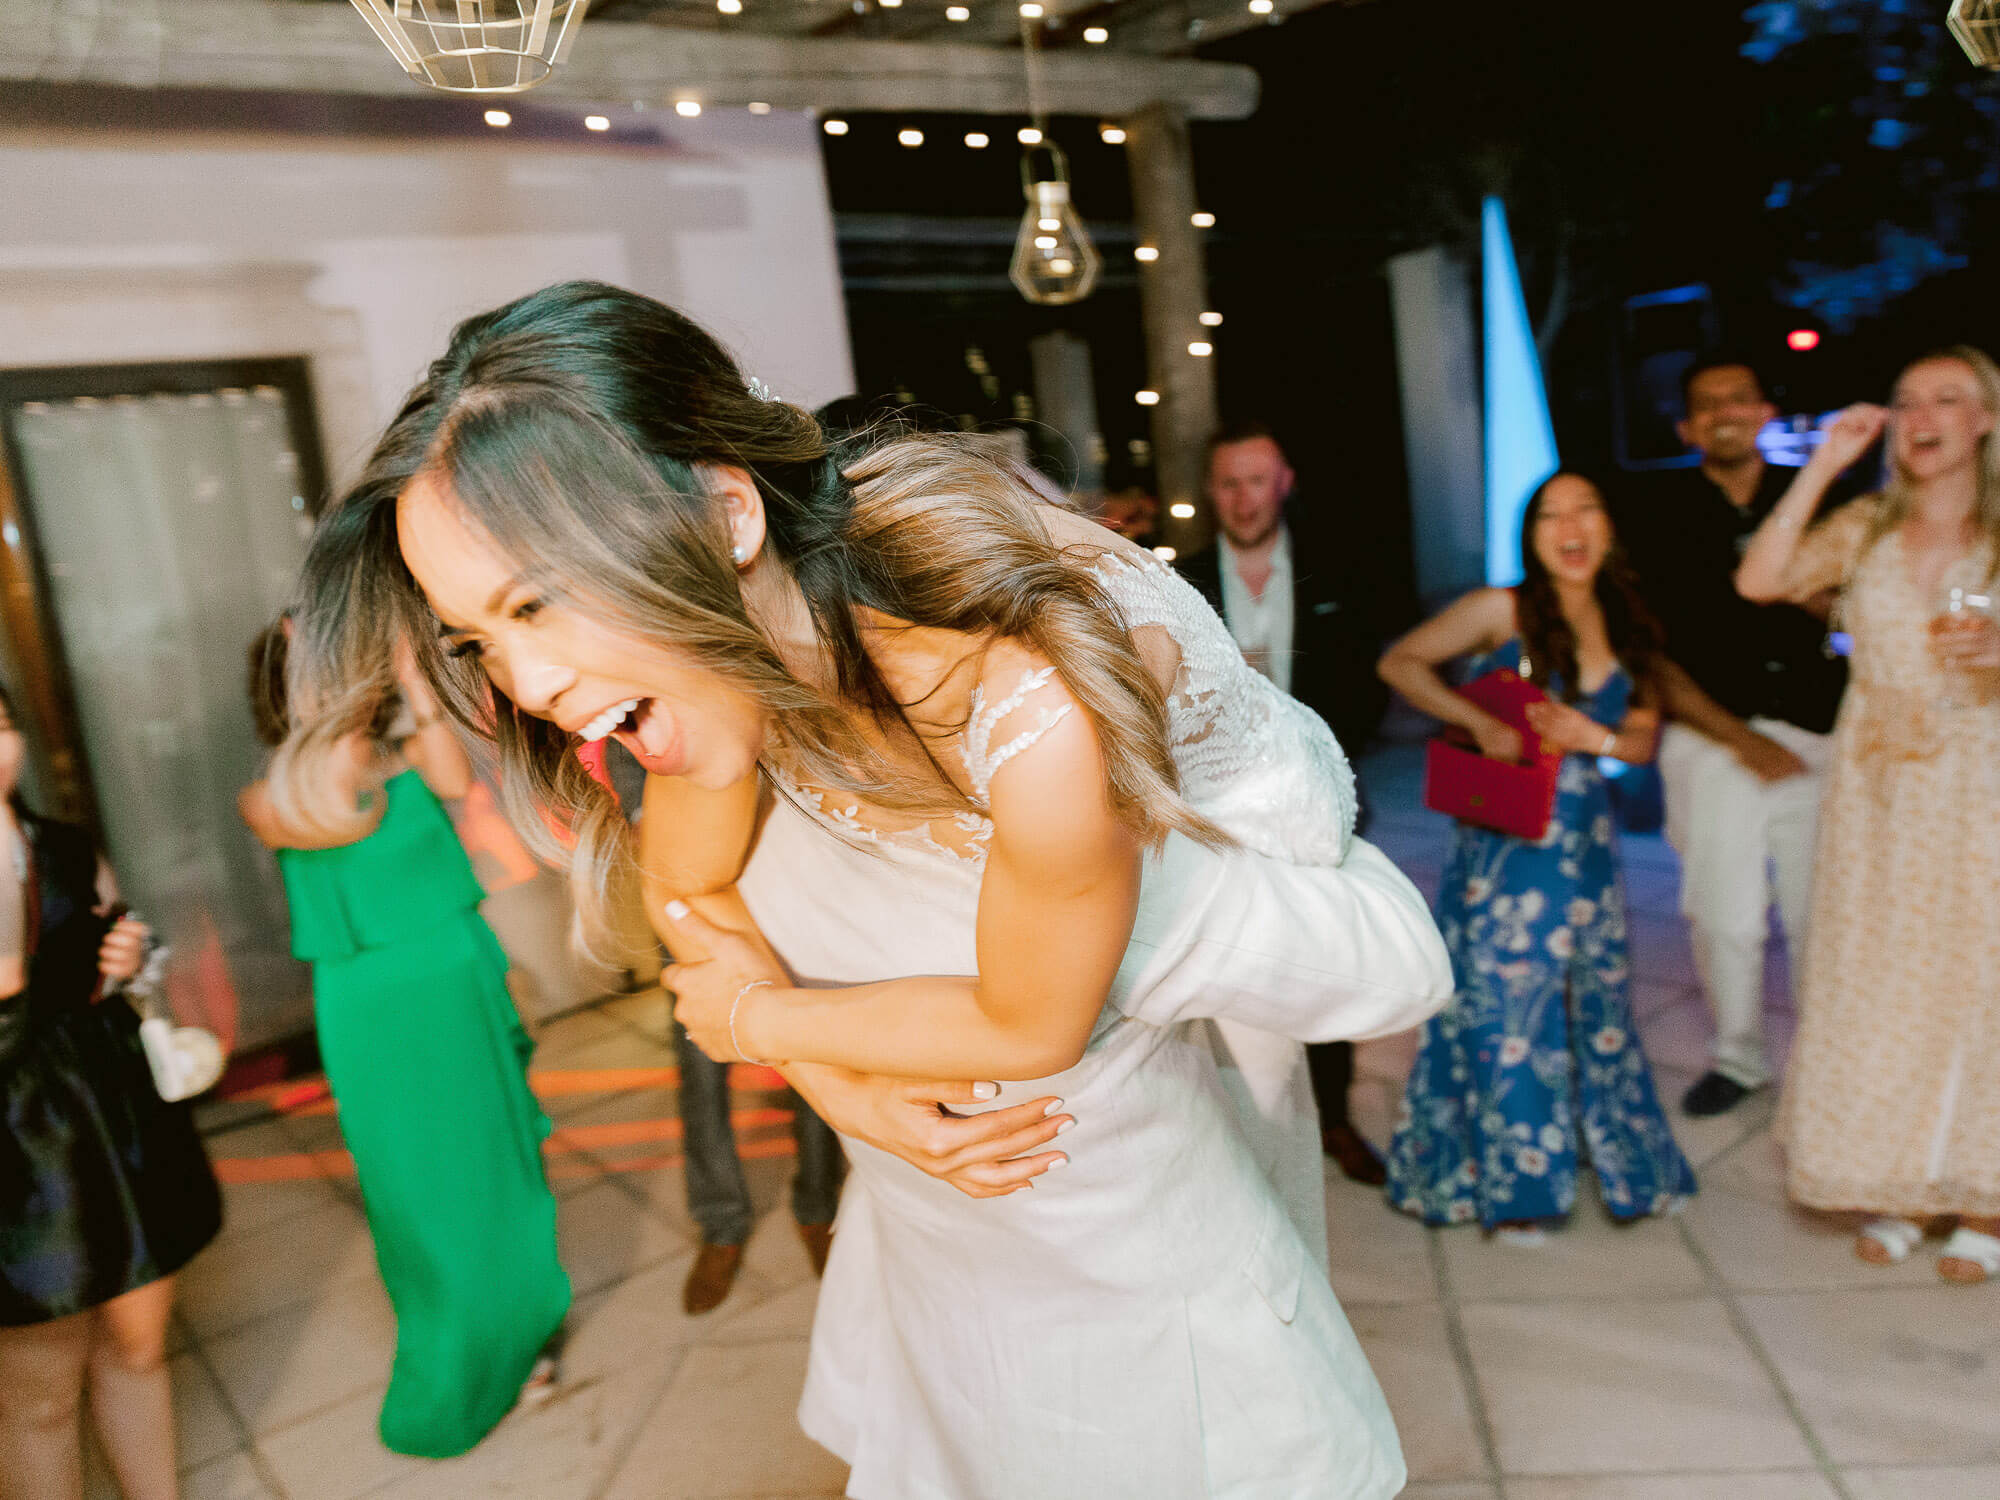 the bride being held up during the party at a destination wedding in the Algarve by Portugal Wedding Photographer